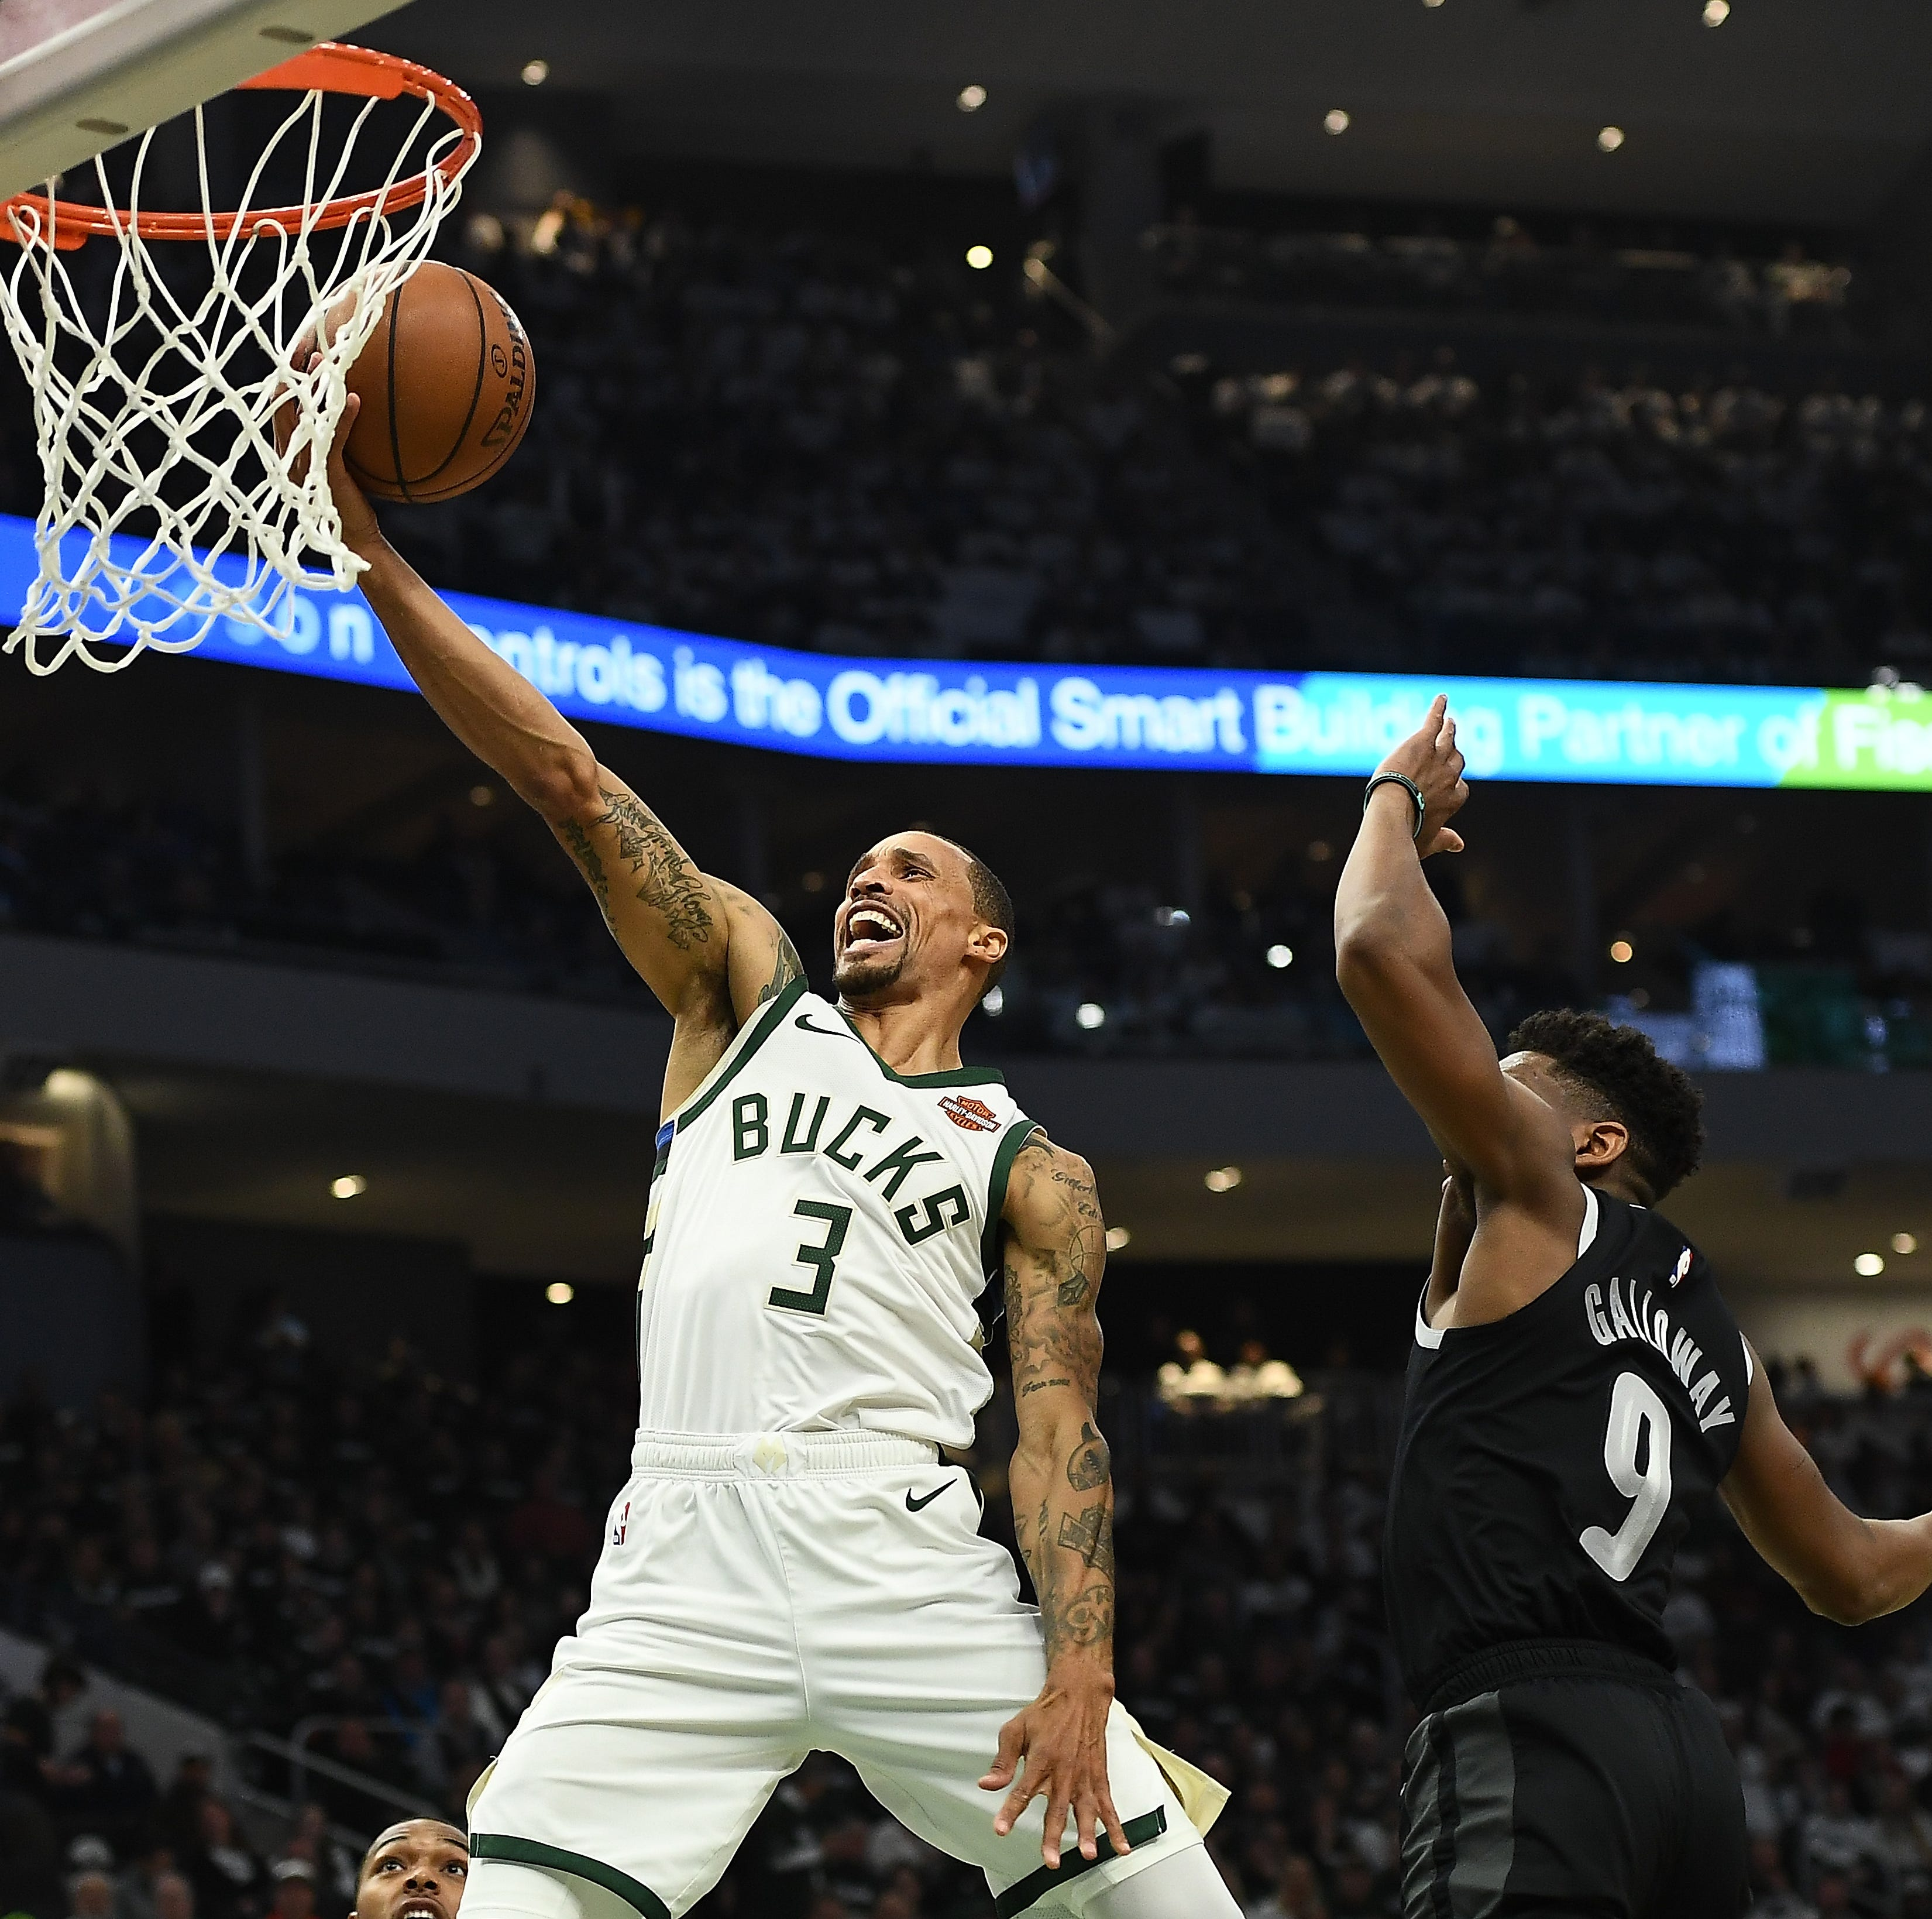 Nickel: In George Hill, the Bucks got an aggressive guard with loads of playoff experience